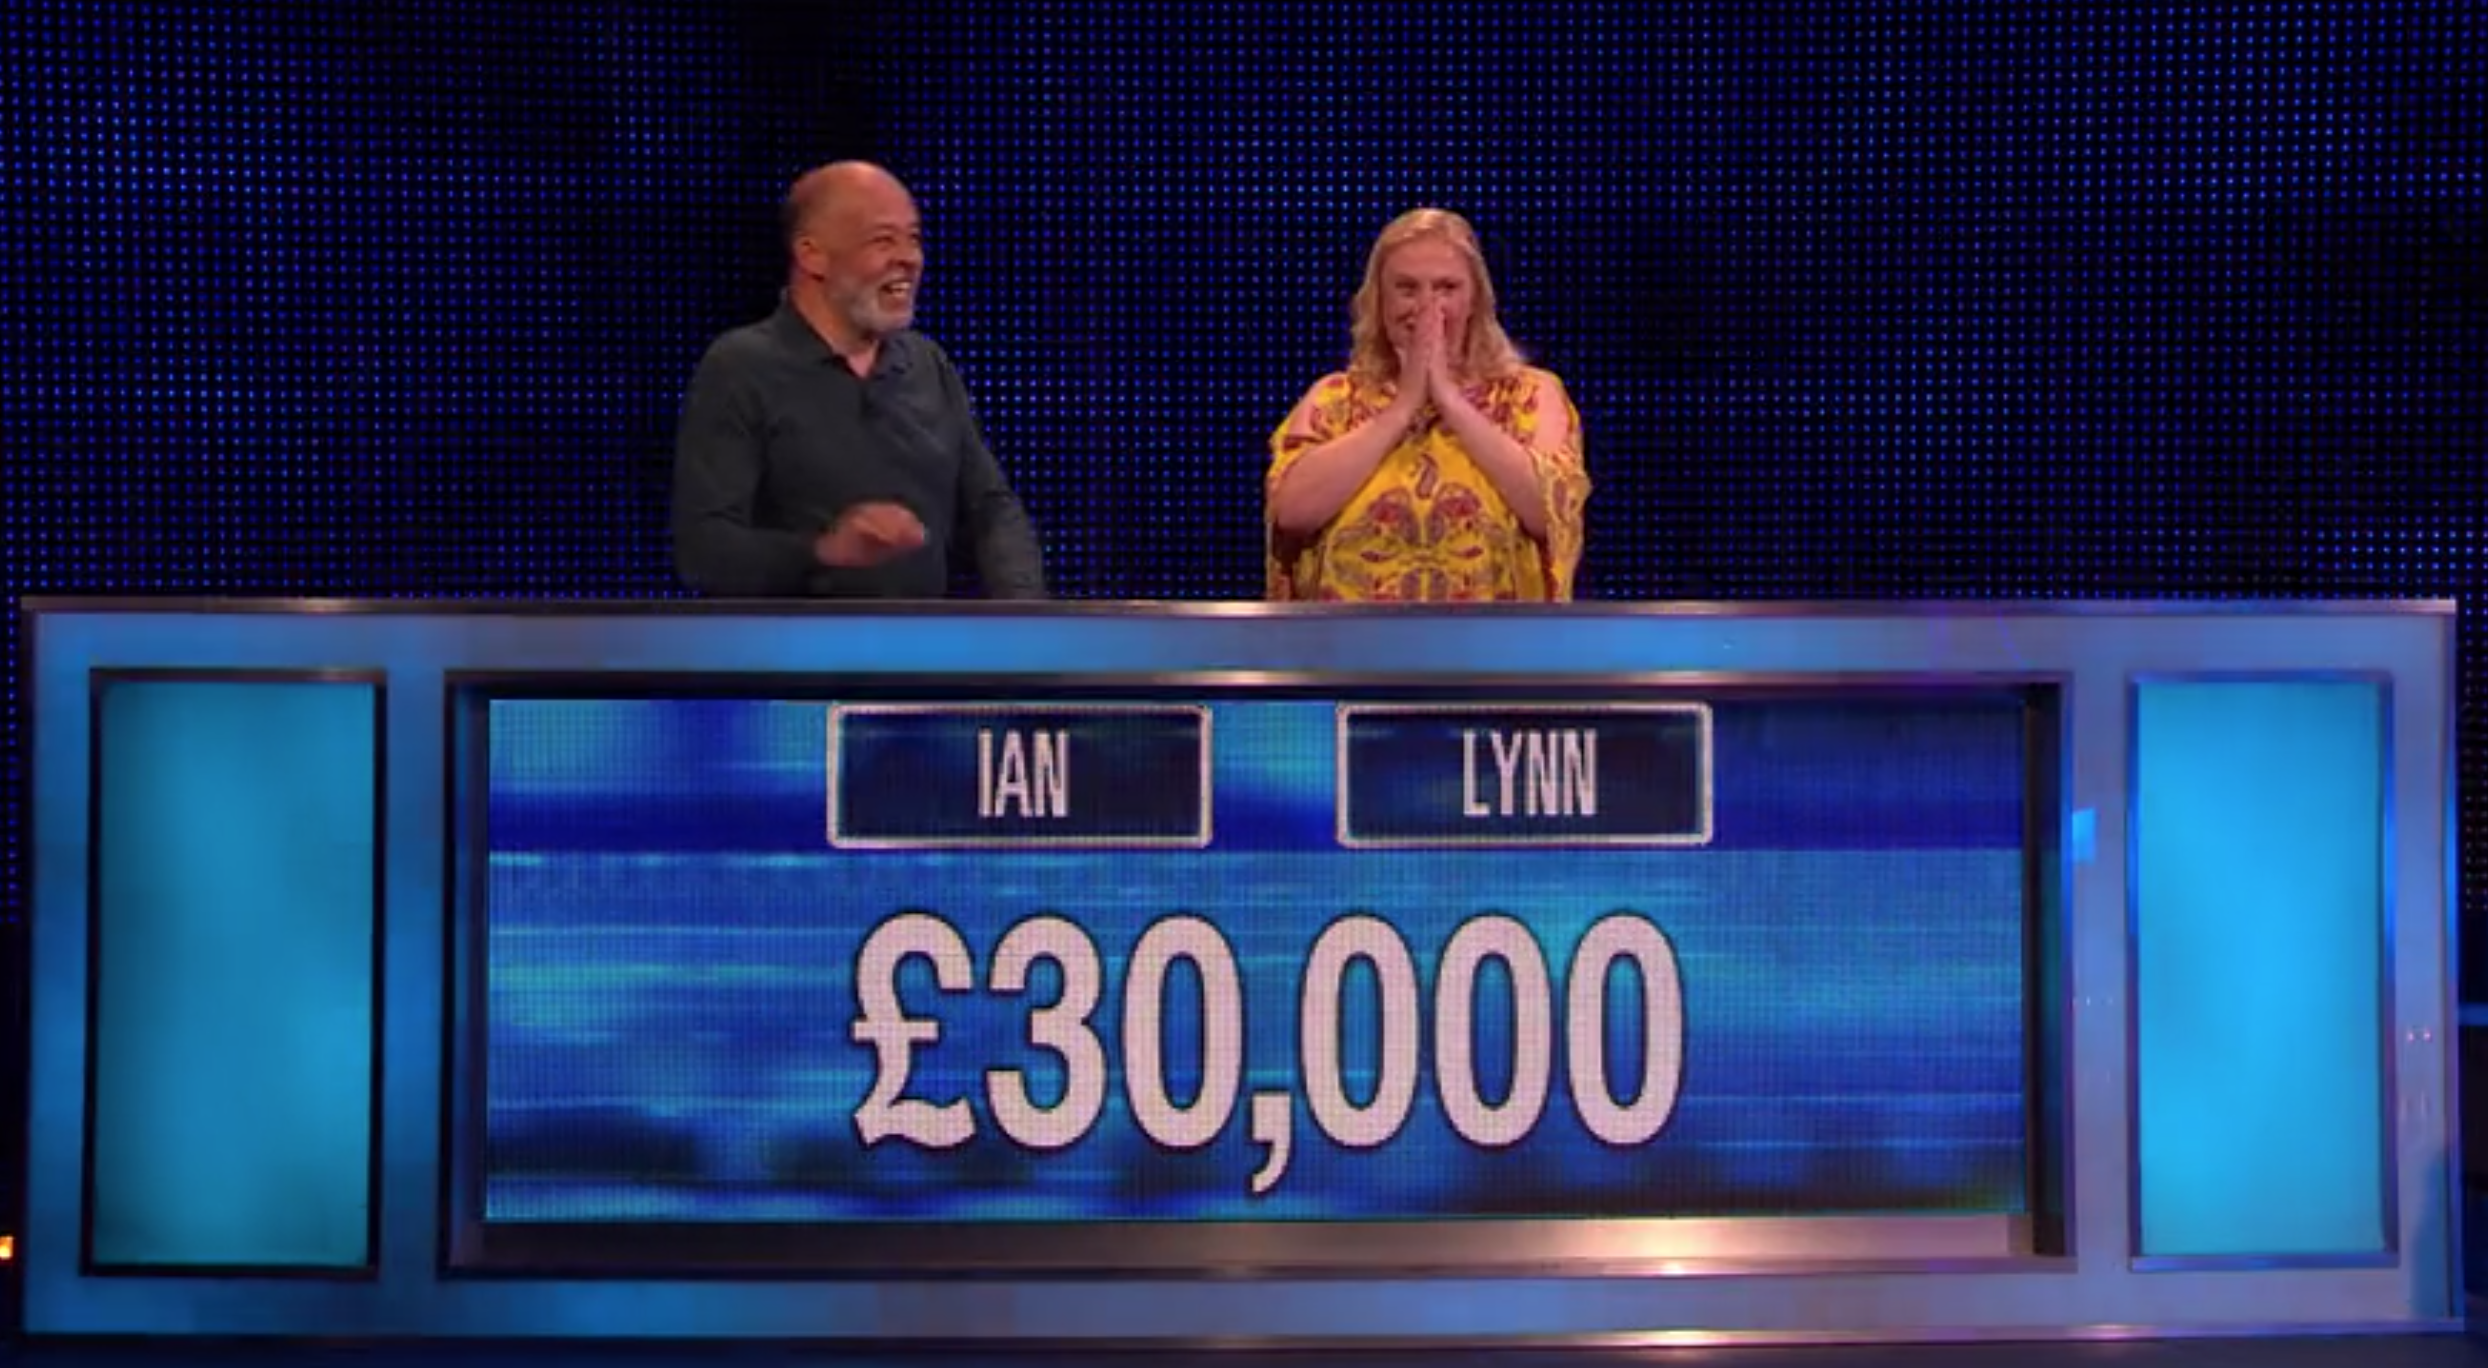 Lynn and Ian on The Chase